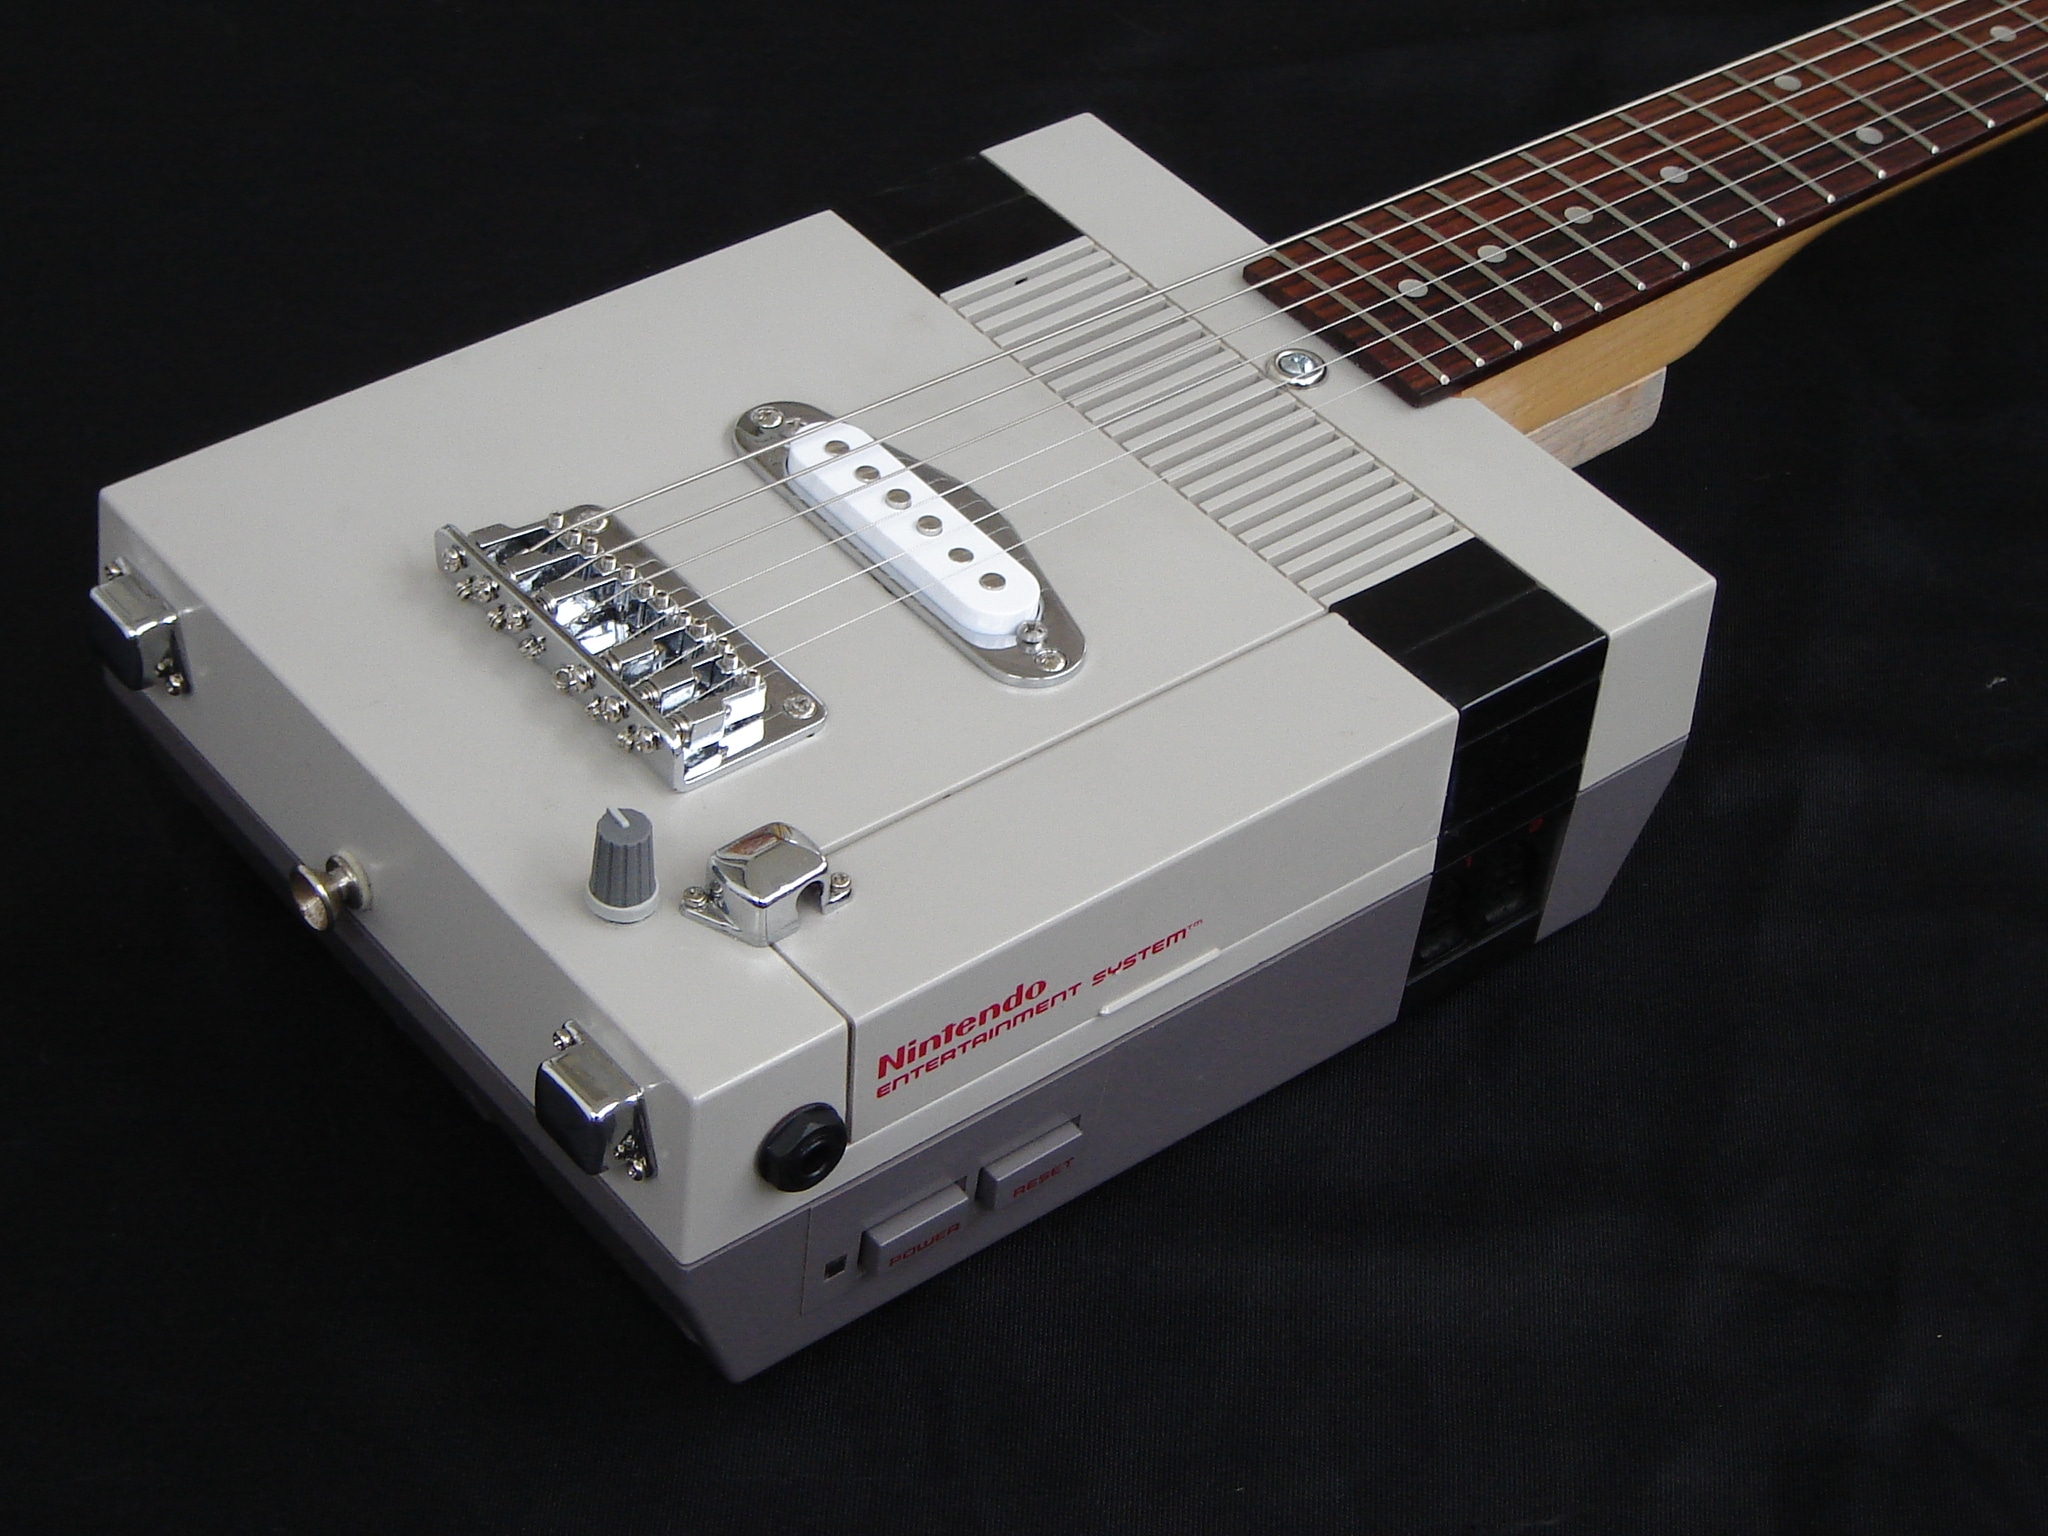 Nintendo NES Guitar: It Doesn't Get Much More Old School